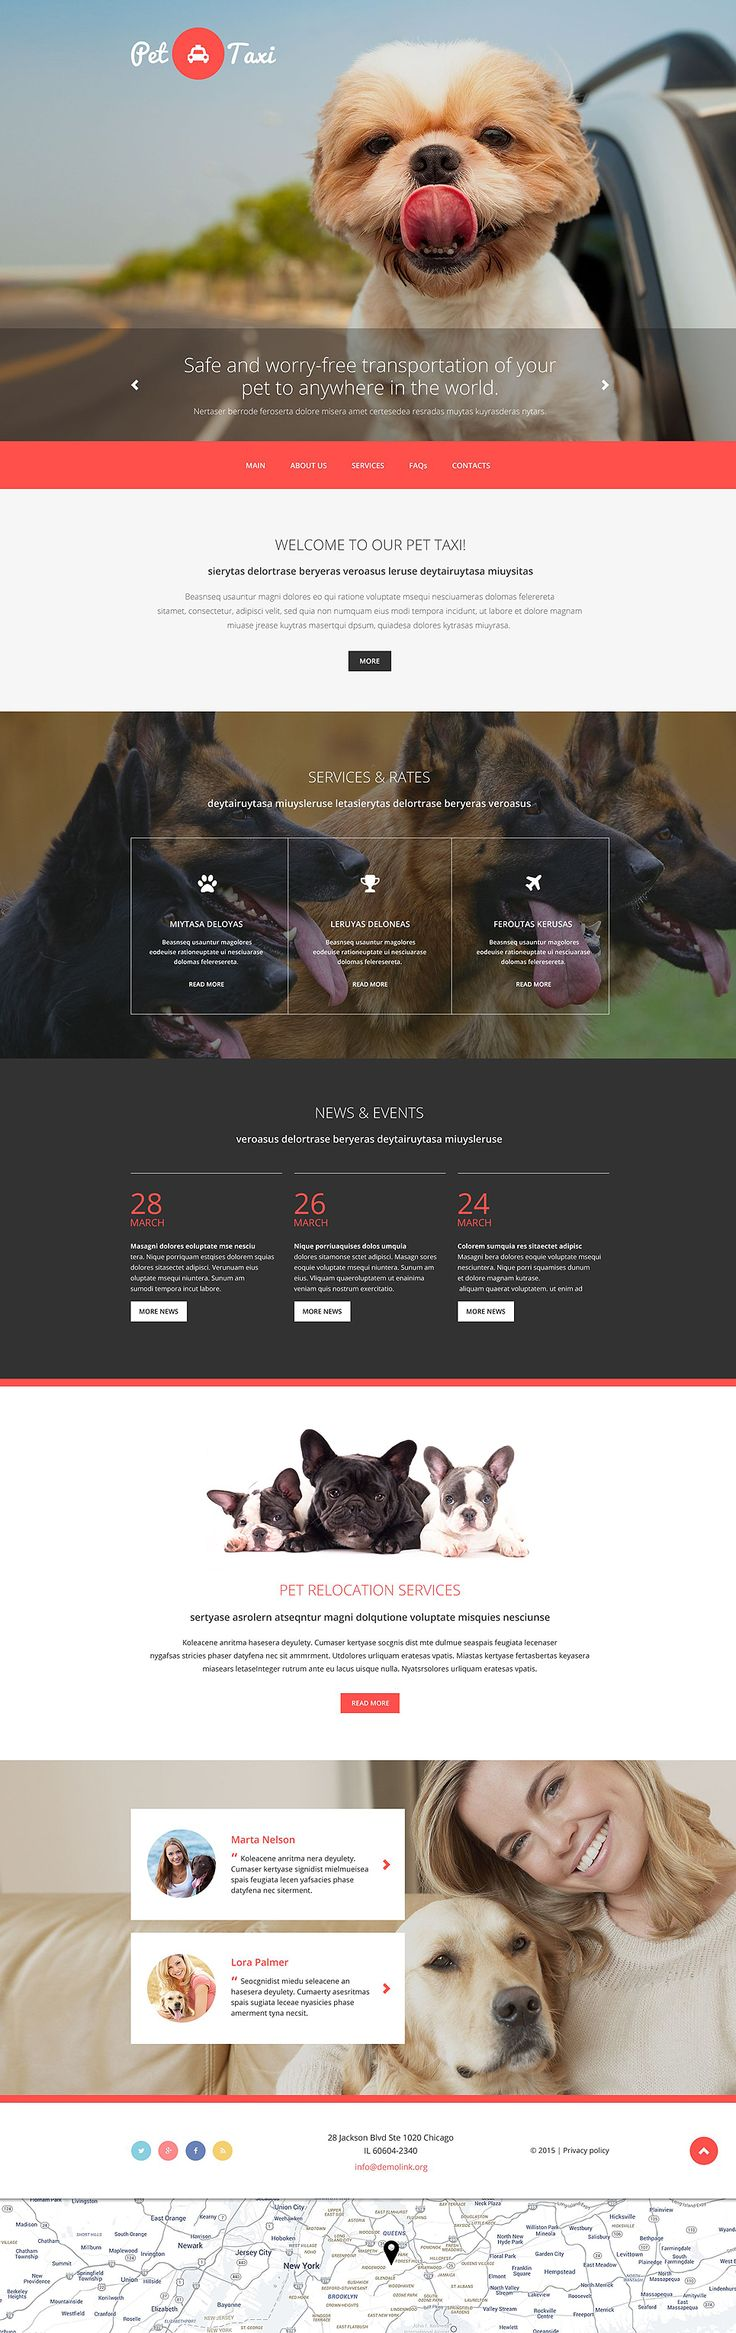 177 best Web Templates images on Pinterest | Templates, Role ...